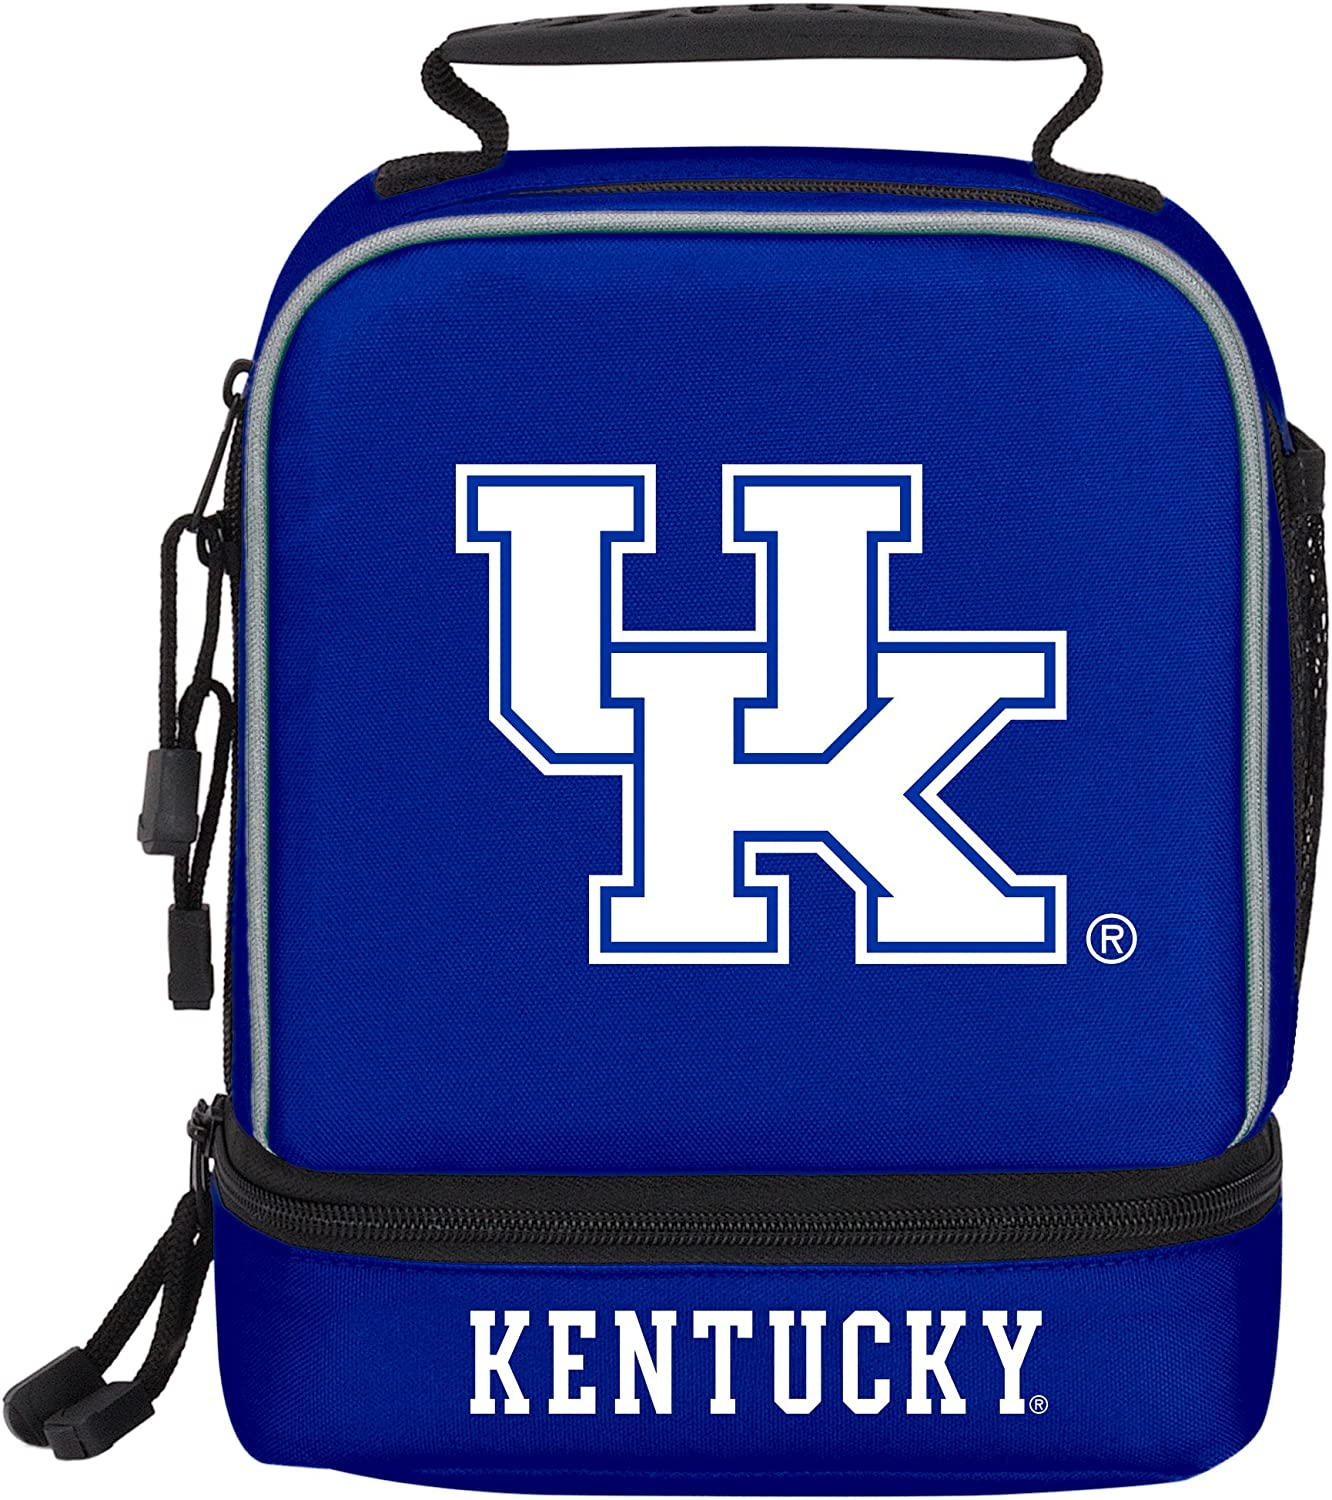 9 x 4.5 x 7.25 Multi Color Officially Licensed NCAA Spark Lunch Kit Bag